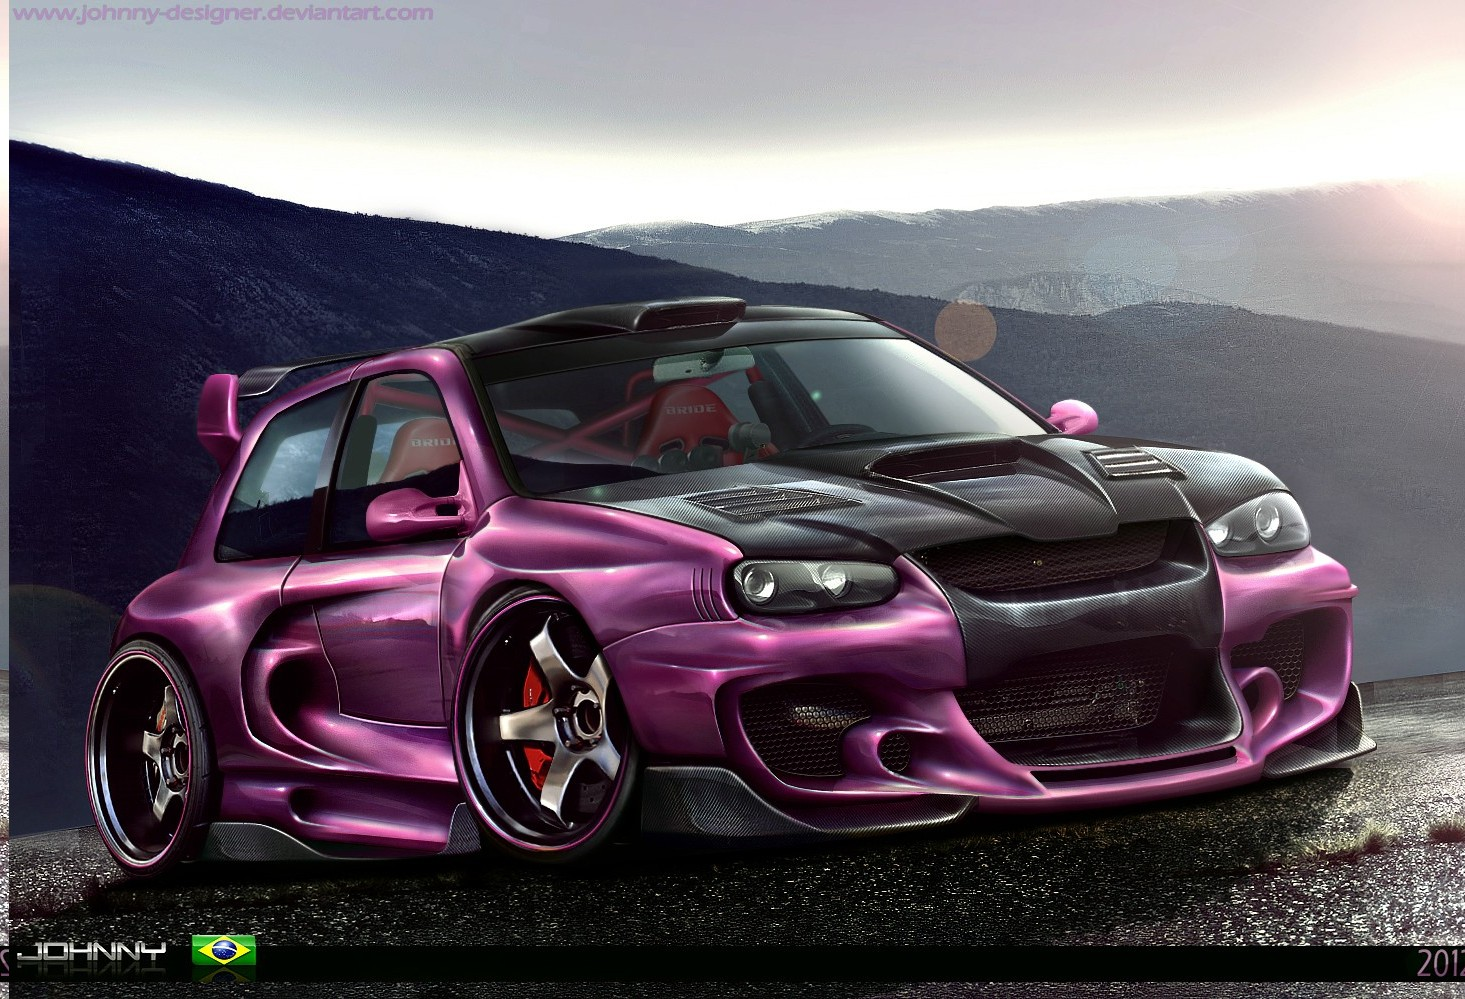 Fast And Furious 4 Cars Wallpapers Car Sports Car Tuning Digital Art Wallpapers Hd